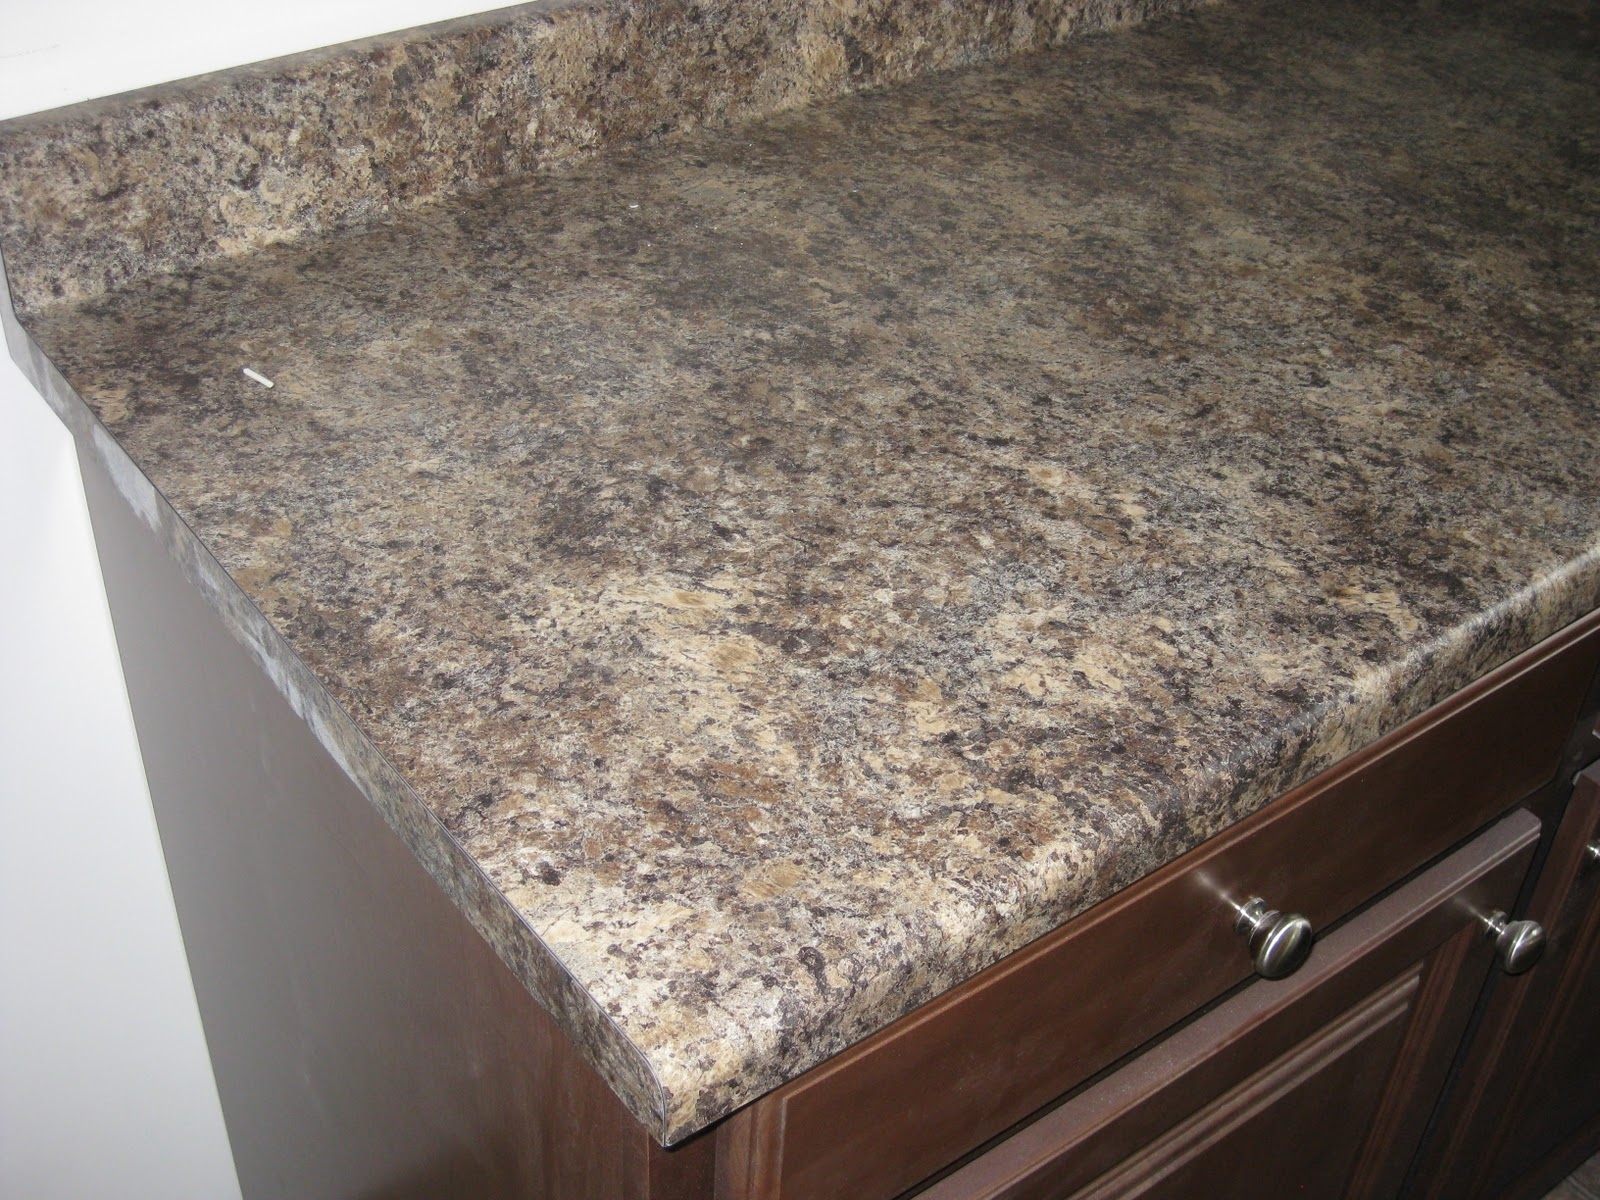 Menards Granite Countertops Spillo Caves